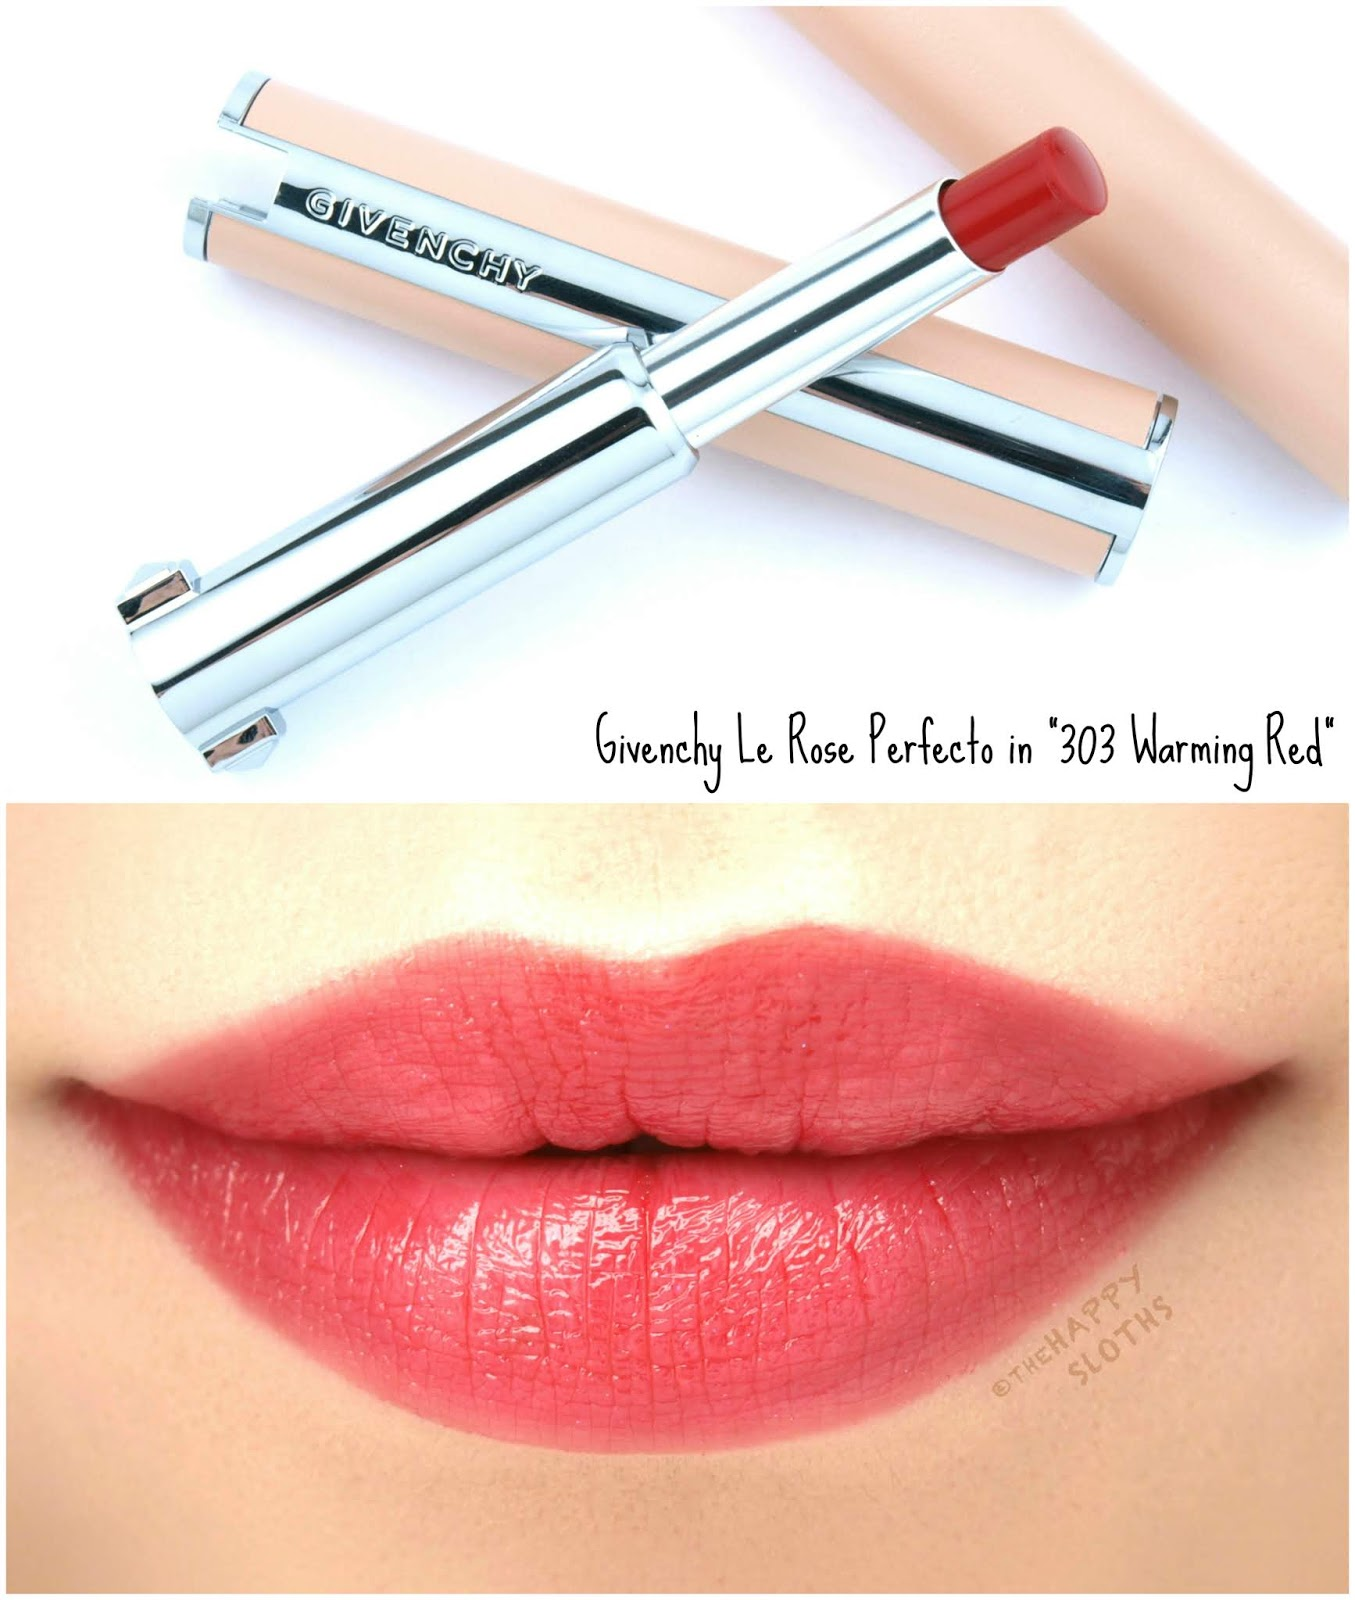 "Givenchy | Le Rose Perfecto Beautifying Lip Balm in ""303 Warming Red"": Review and Swatches"